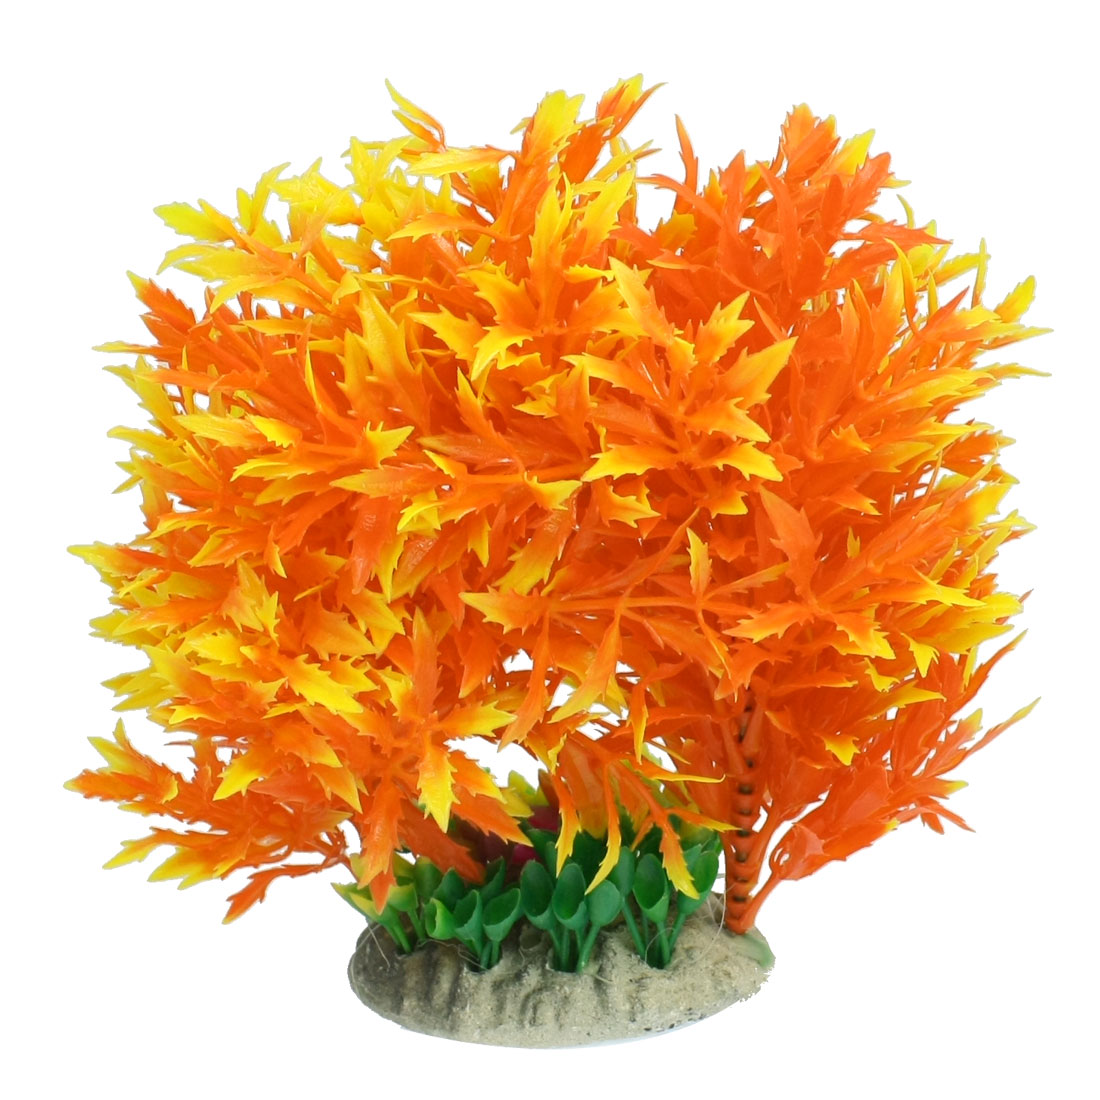 "Ceramic Base Orange Yellow Plastic Grass Decor 5.9"" for Fish Tank"